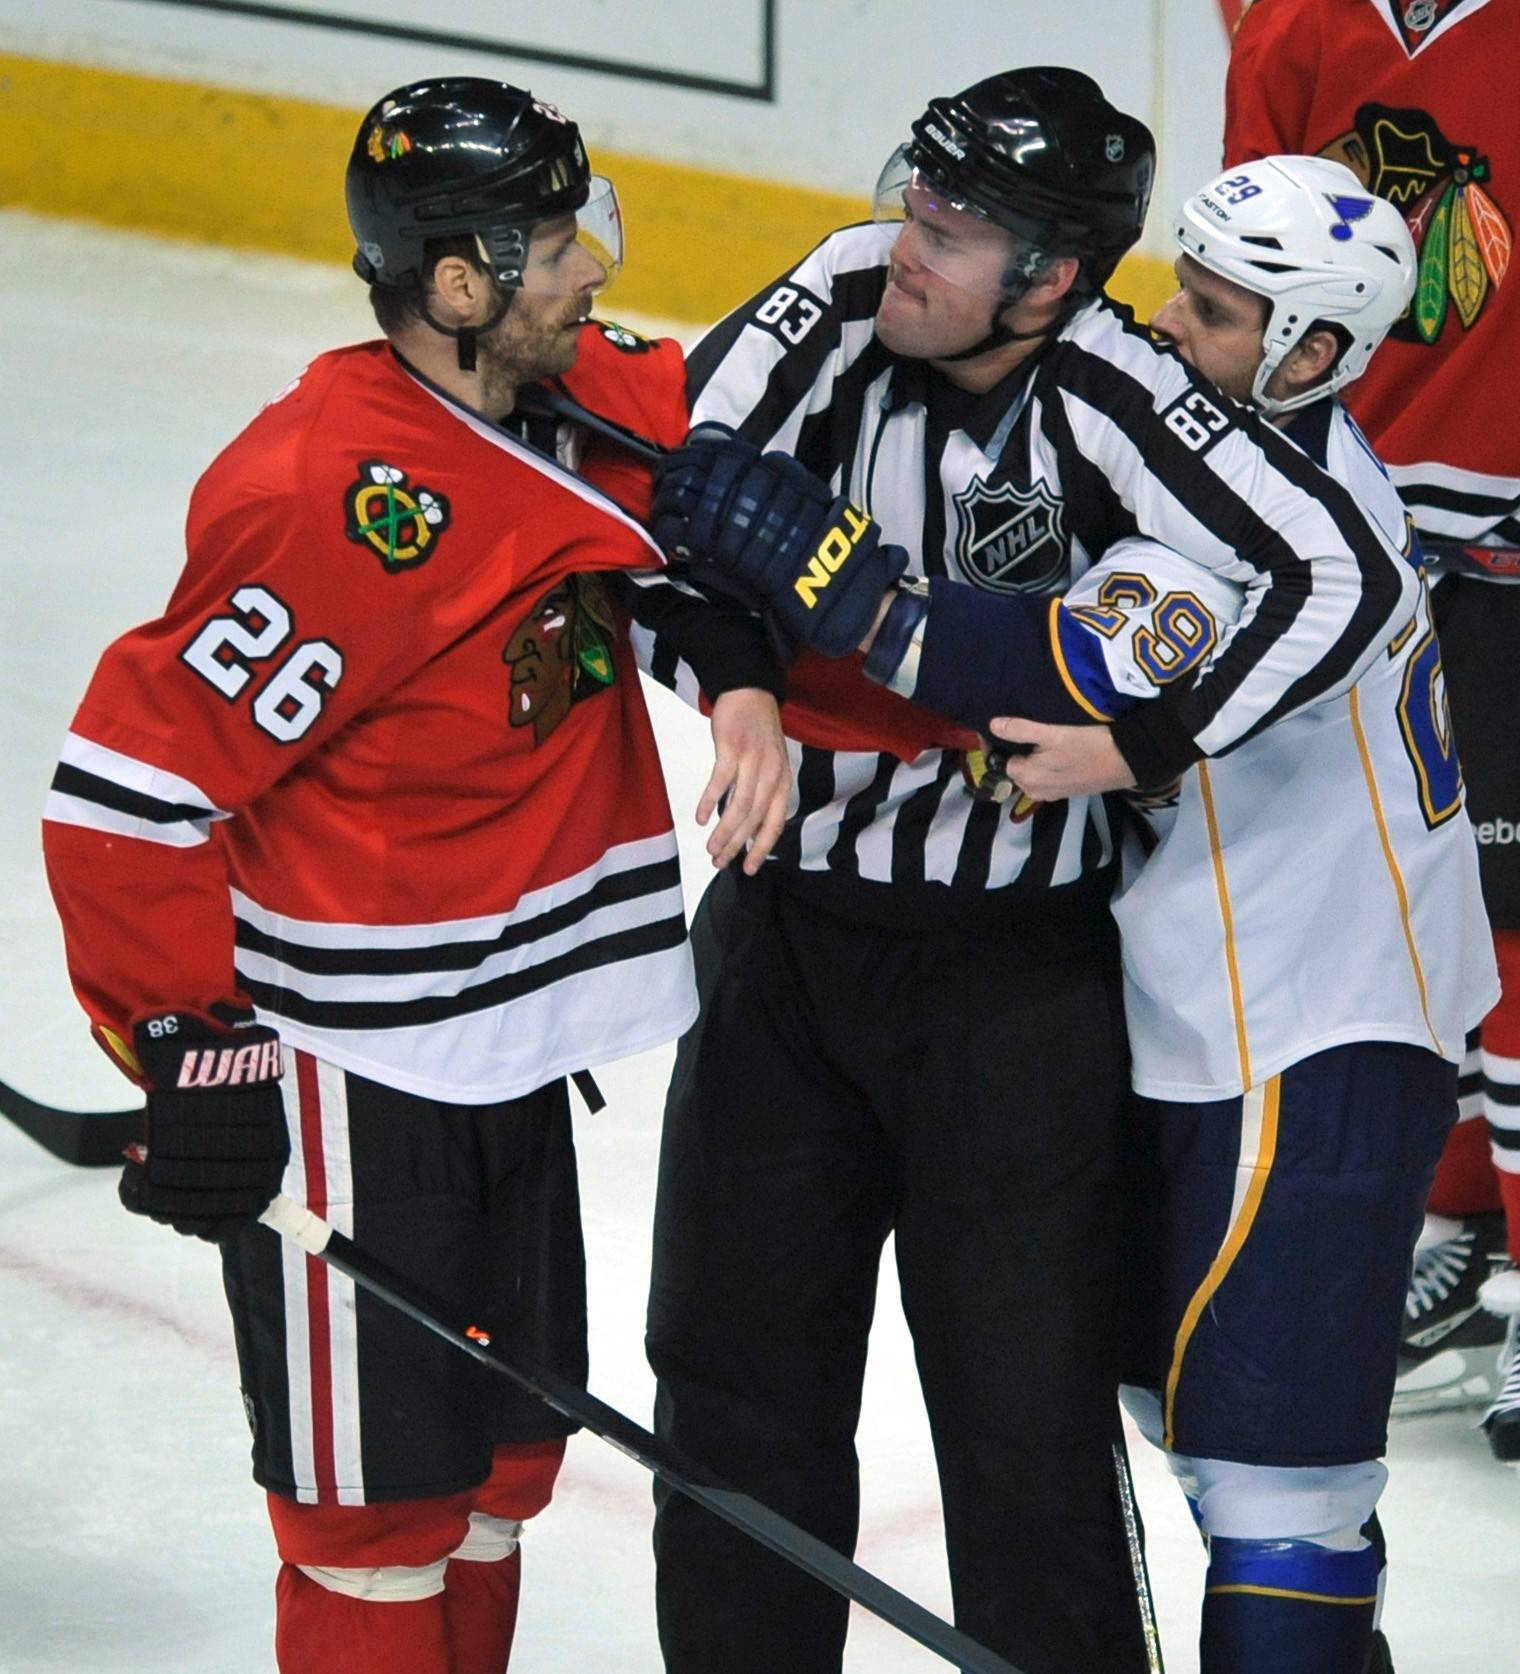 Linesman Matt MacPherson (83), breaks a up a scuffle between Chicago Blackhawks' Michal Handzus (26) and St. Louis Blues' Steve Ott (29) during the second period of an NHL hockey game in Chicago, Wednesday, March, 19, 2014. Chicago won 4-0. (AP Photo/Paul Beaty)